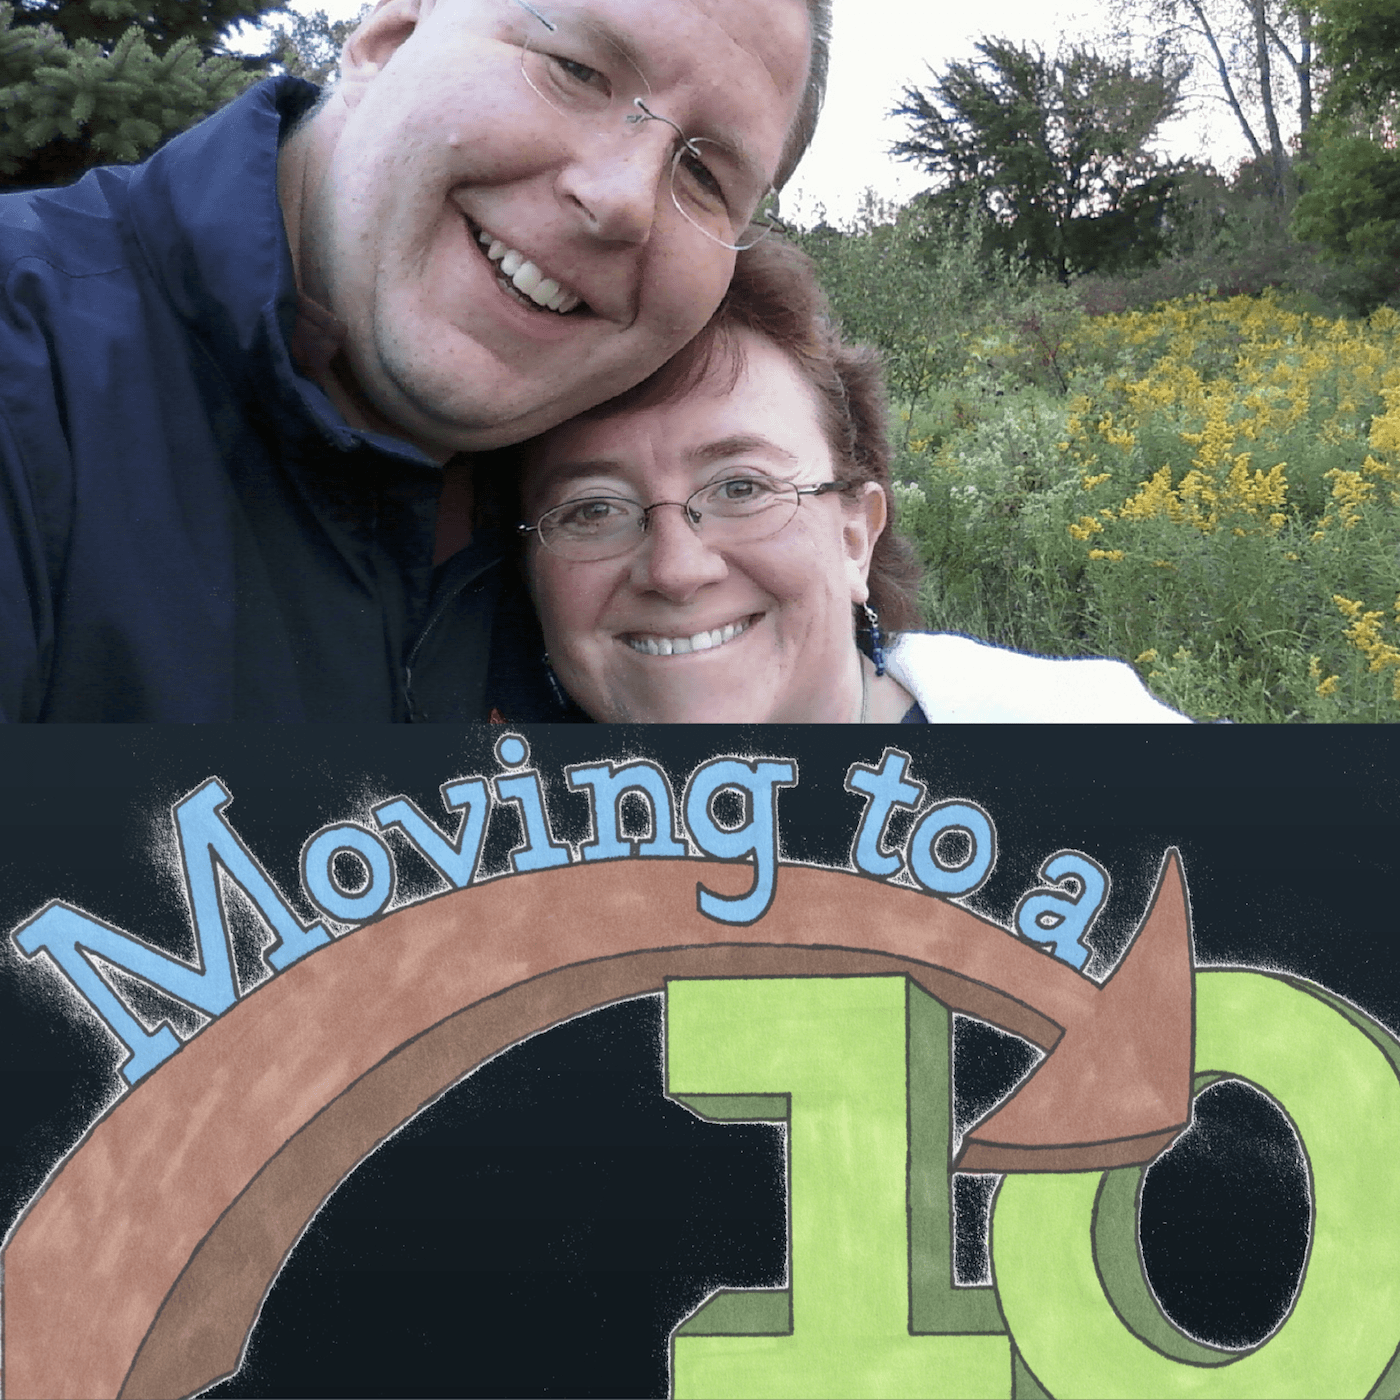 Moving to a Ten - A Podcast Dedicated To Improving Relationships and Marriages